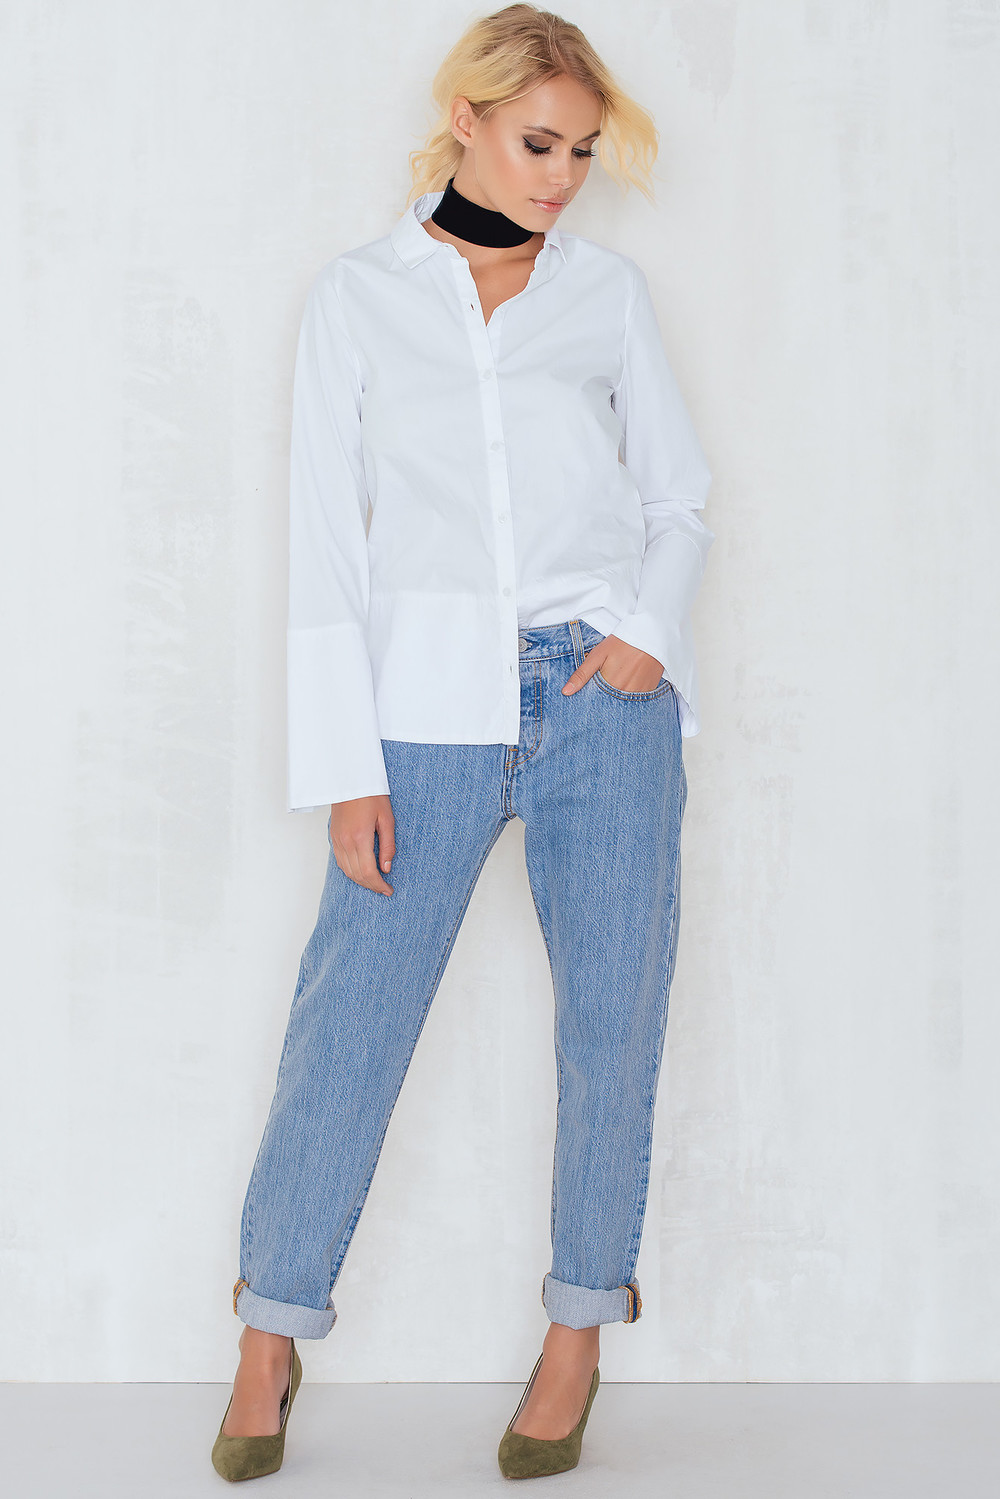 Levi's 501 CT Jeans For Women Daylight Falls